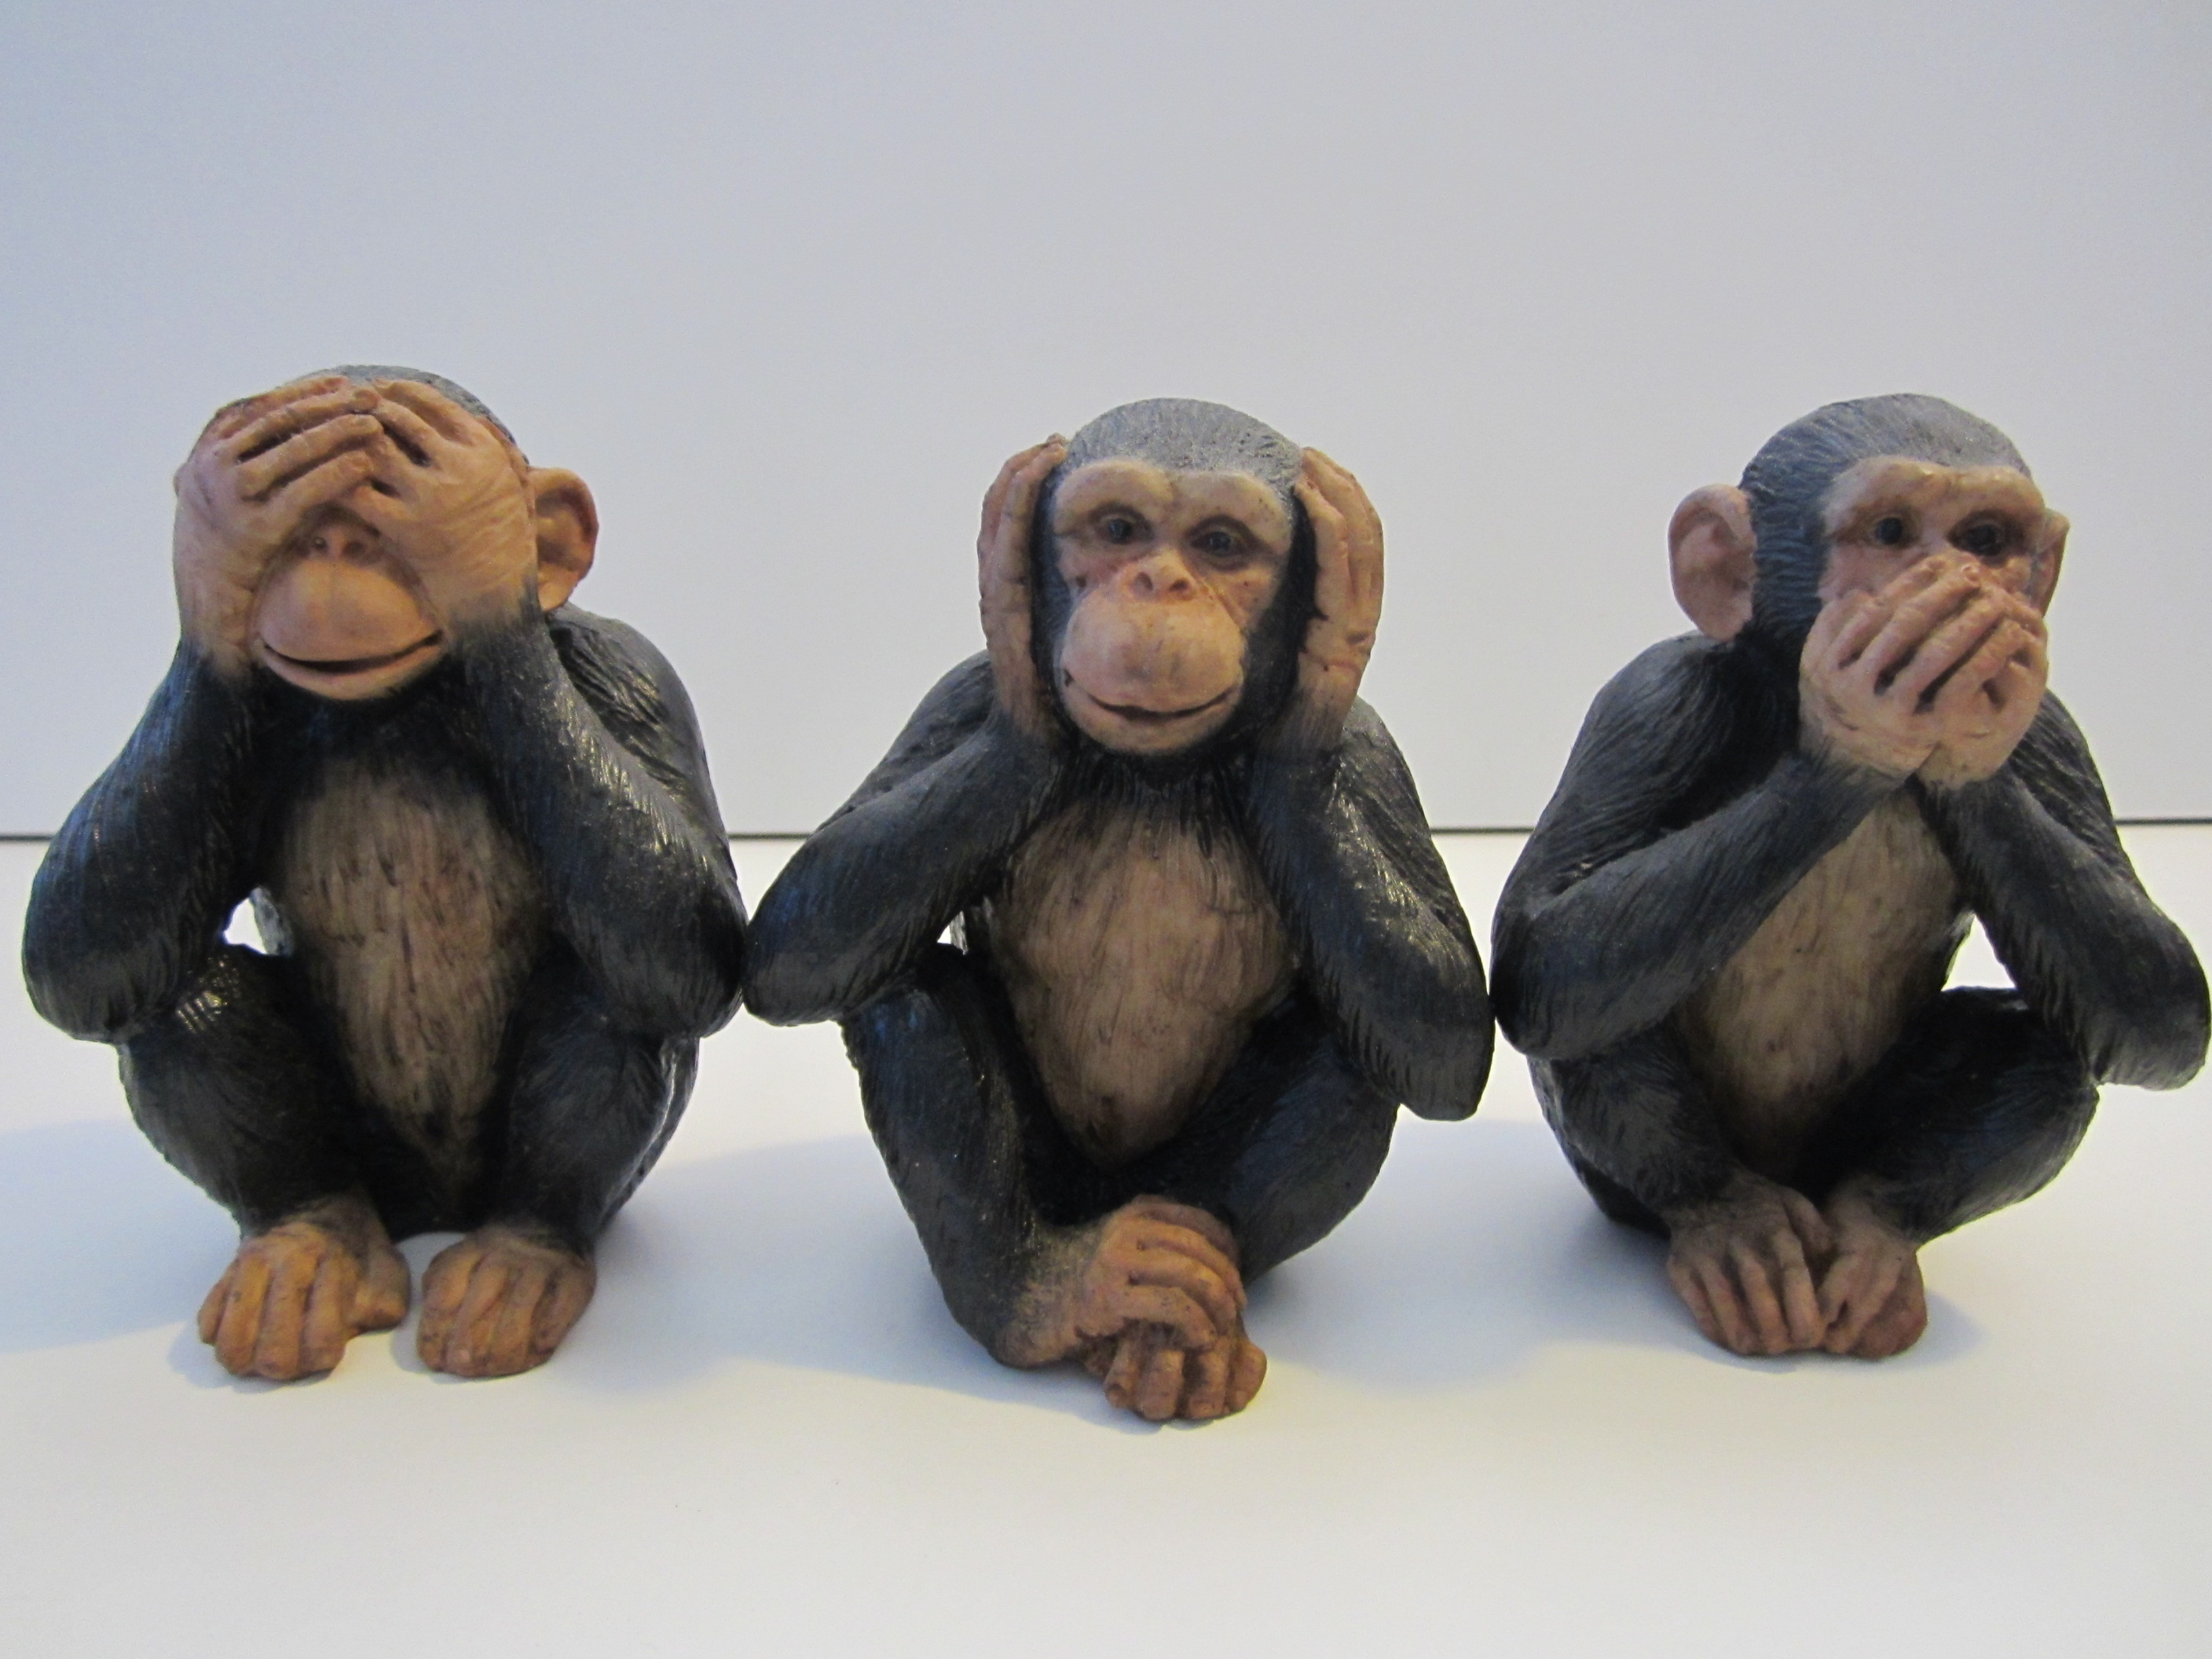 Monkey Gallery 171 Wise Monkeys Abroad